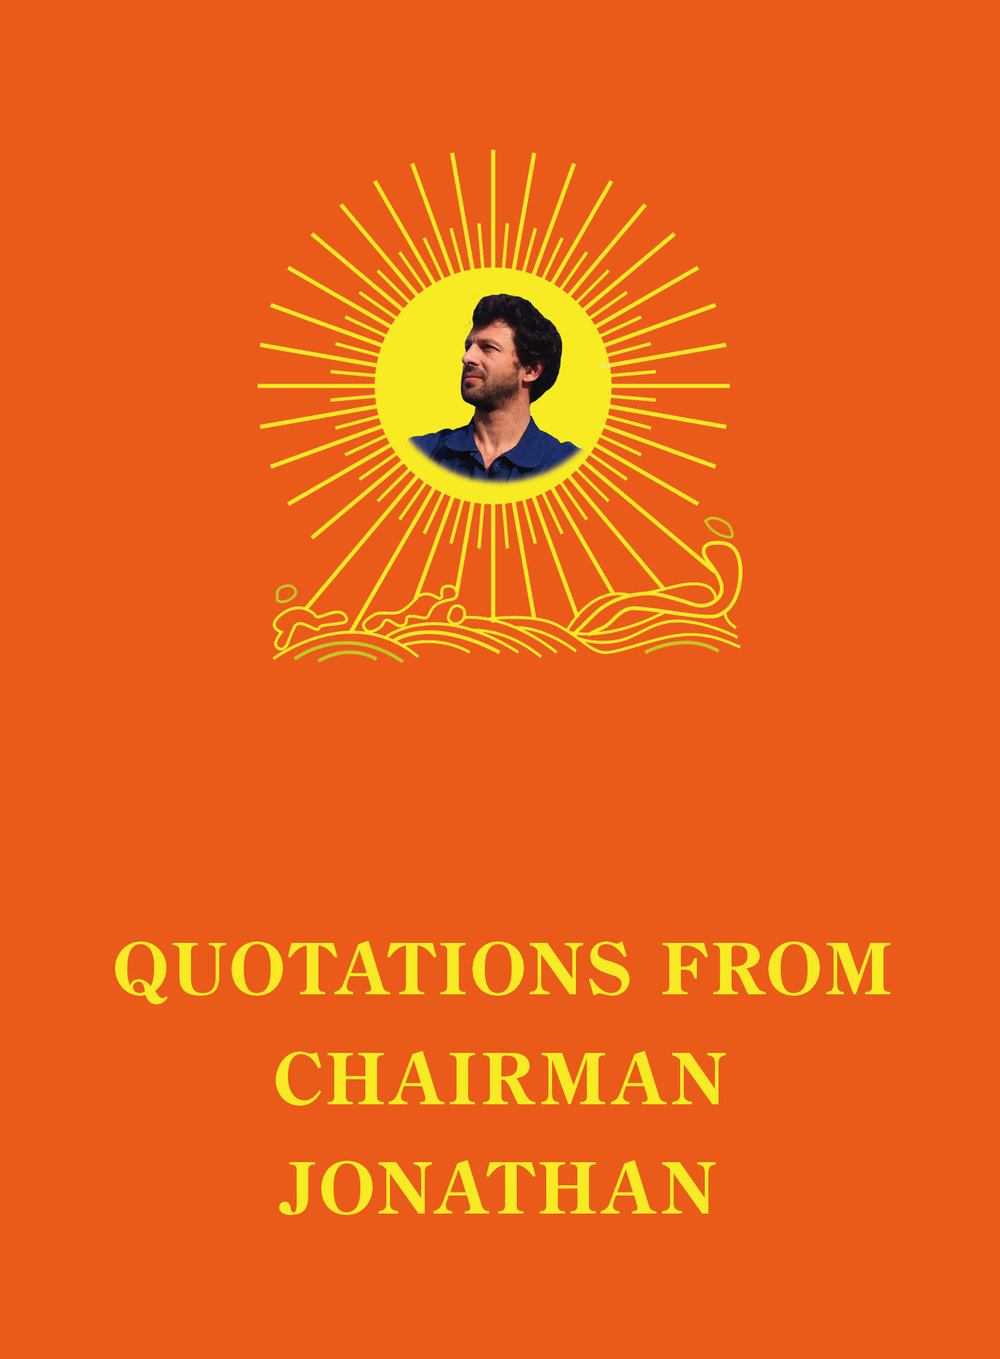 QUOTATIONS FROM CHAIRMAN JONATHAN propaganda cover book / TTC 2017